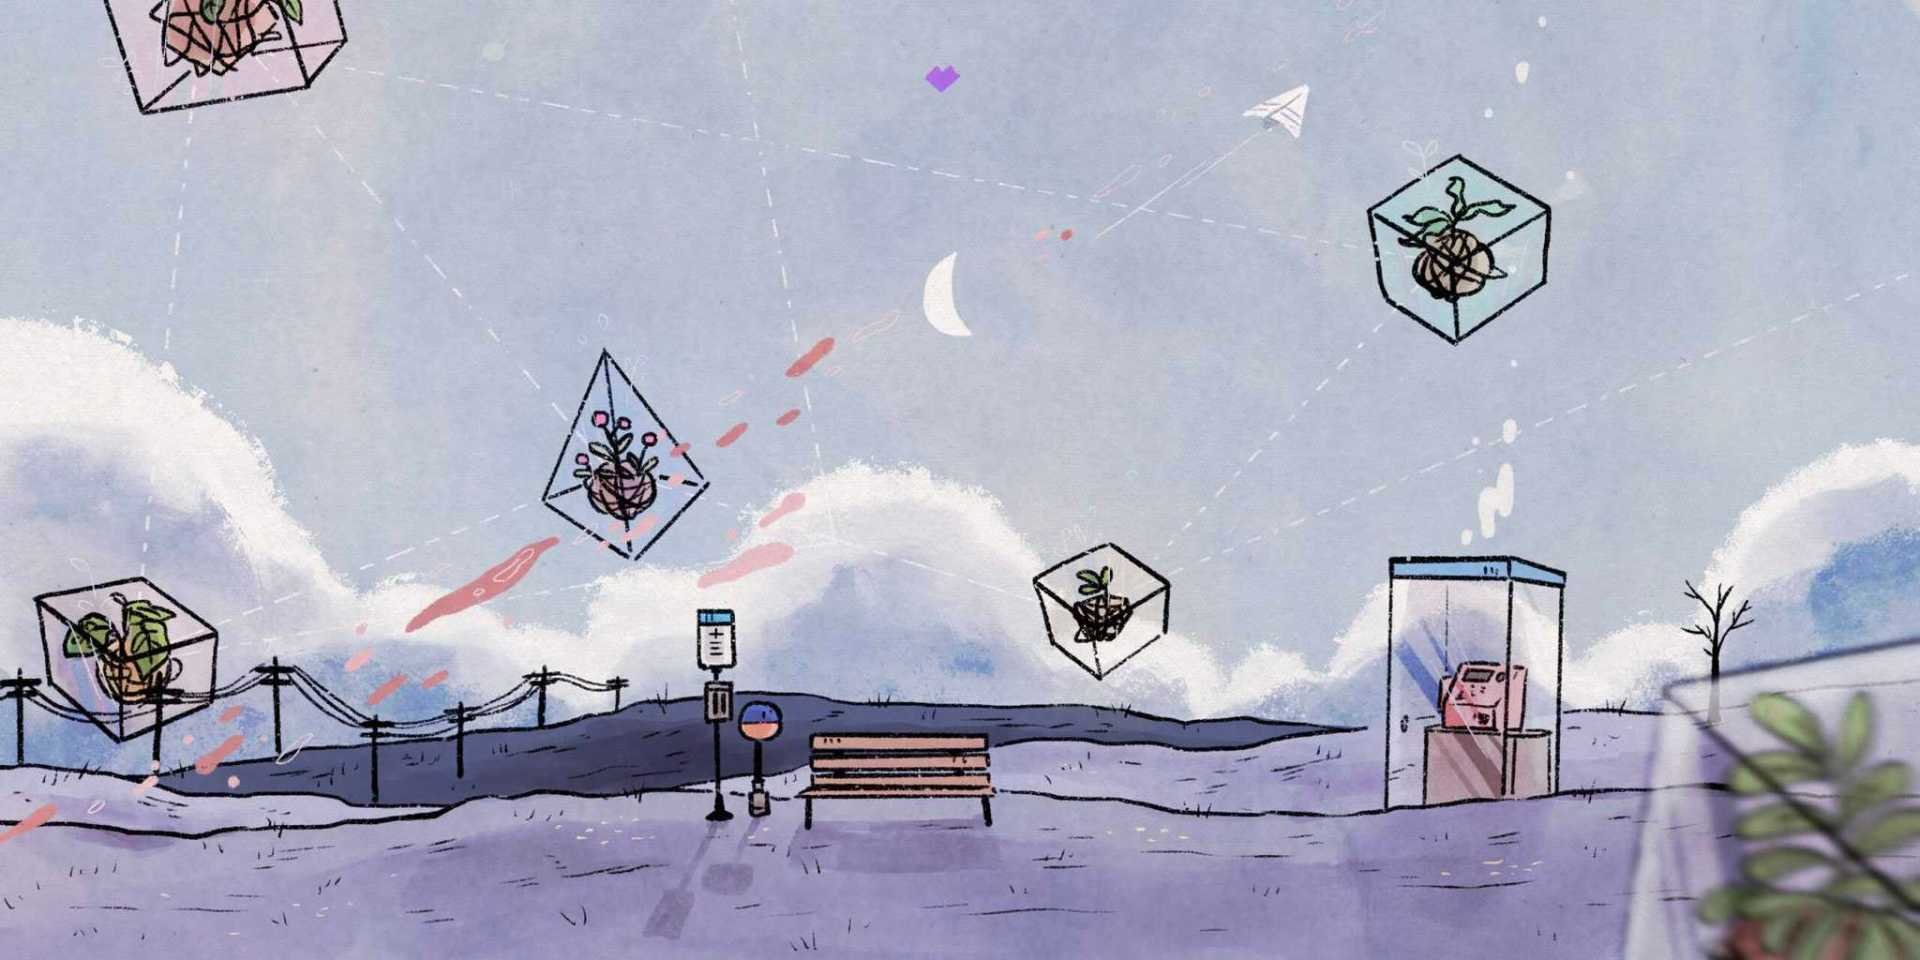 Illustration of an outdoor scene depicting relationships between objects relevant to BTS